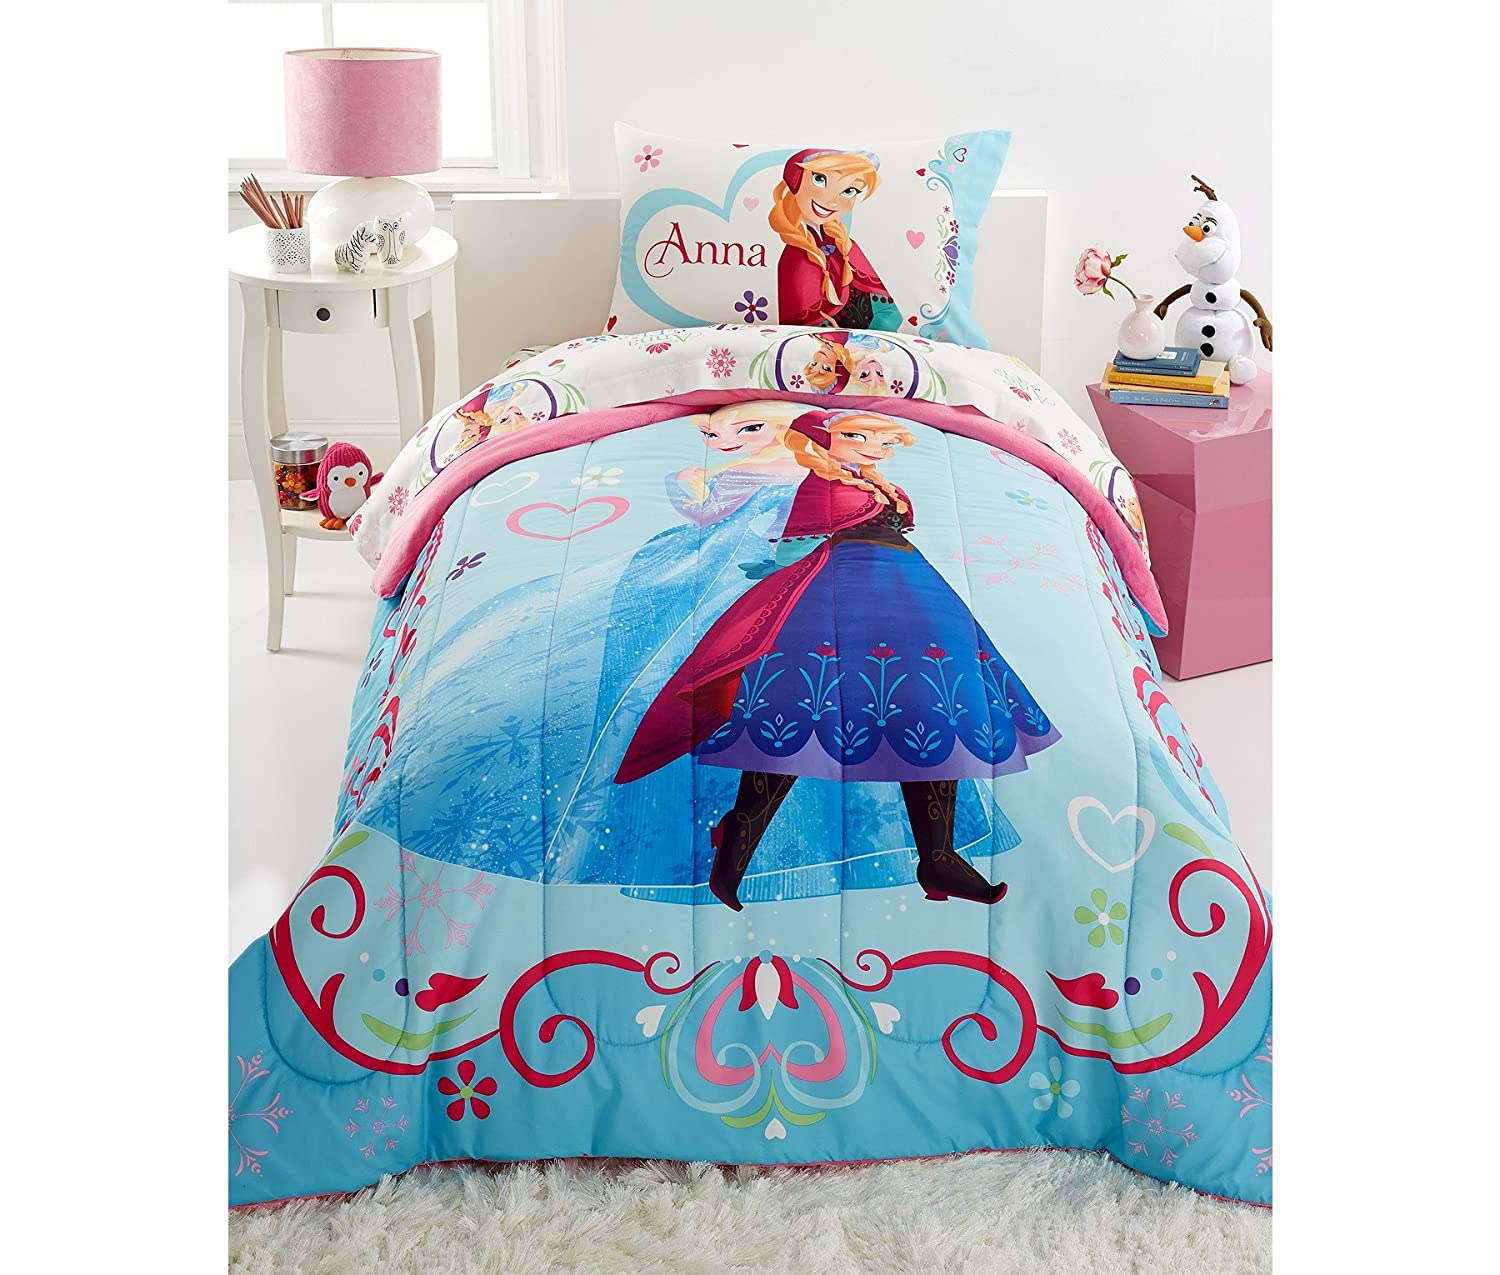 Amazon.com: Disney Frozen Springtime Floral Full Sheet Set Bedding: Home &  Kitchen - Amazon.com: Disney Frozen Springtime Floral Full Sheet Set Bedding